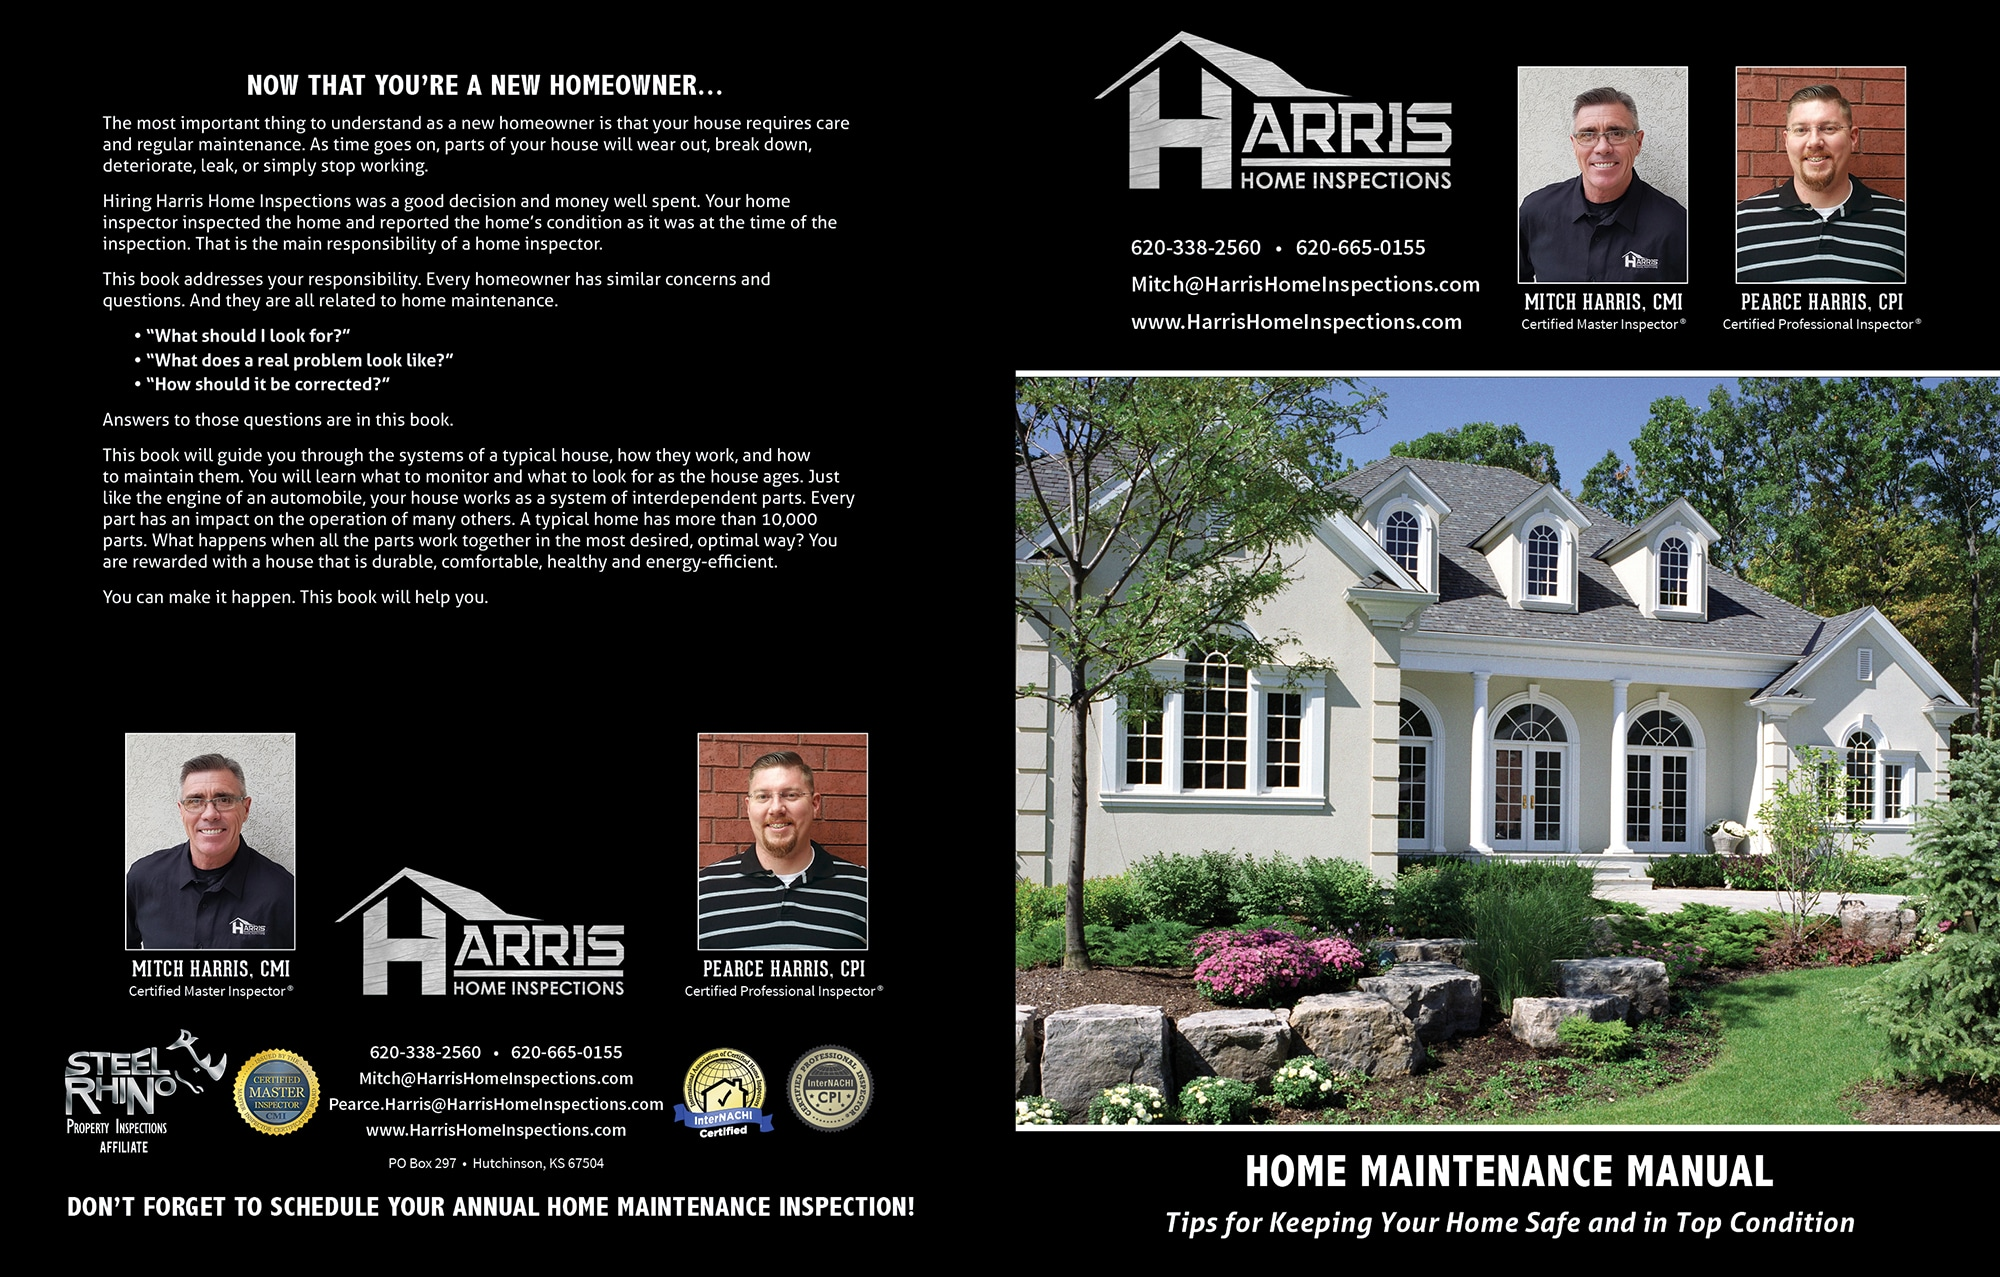 custom home maintenance book for harris home inspections - inspection gallery